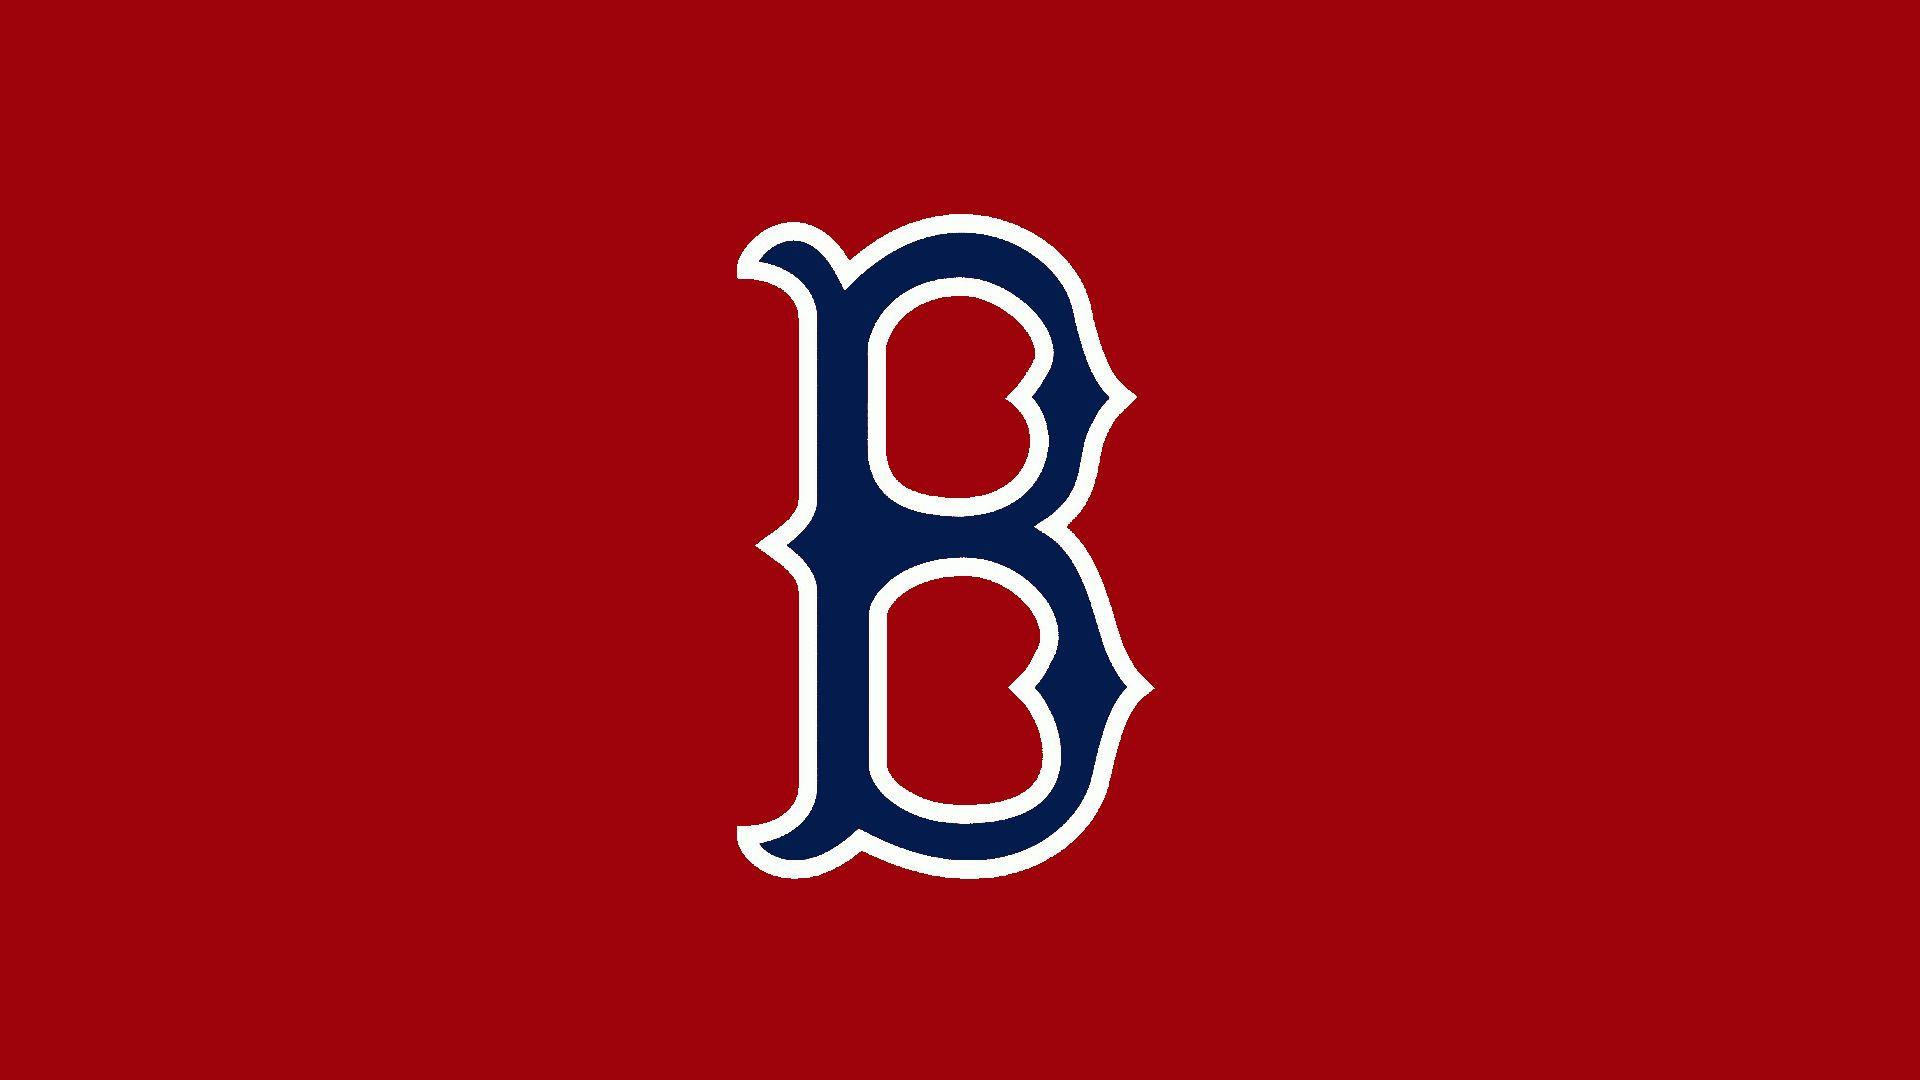 boston red sox wallpaper widescreen - photo #1